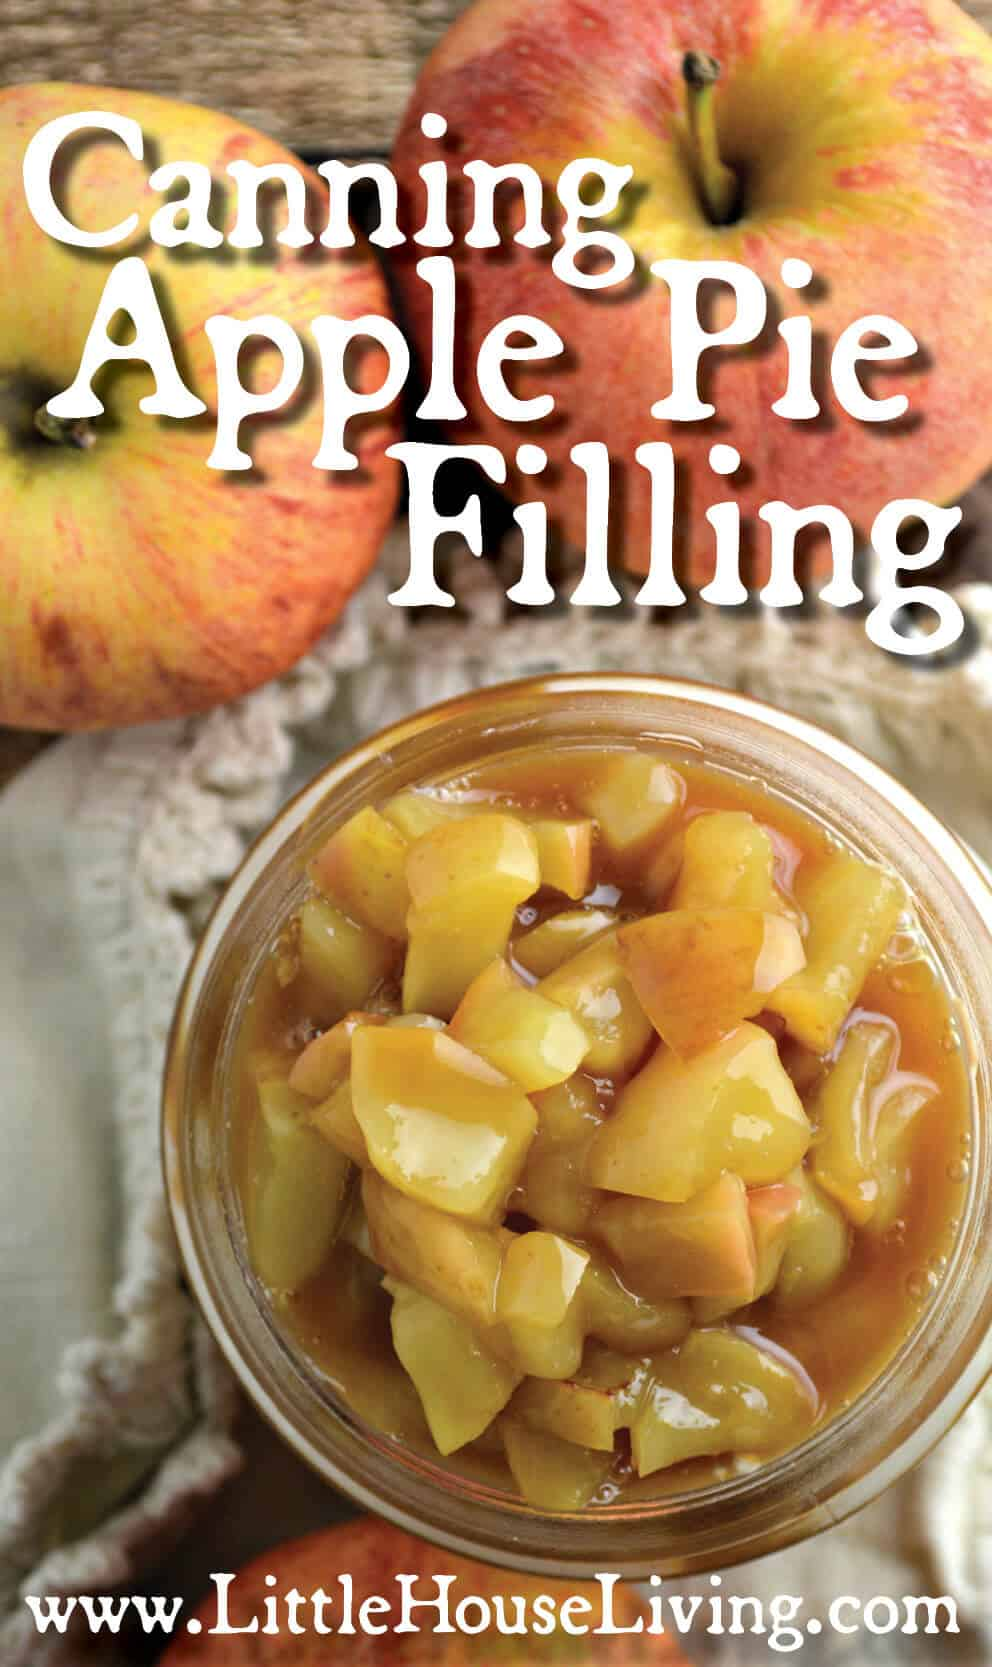 Canning Apple Pie Filling from Little House Living 2